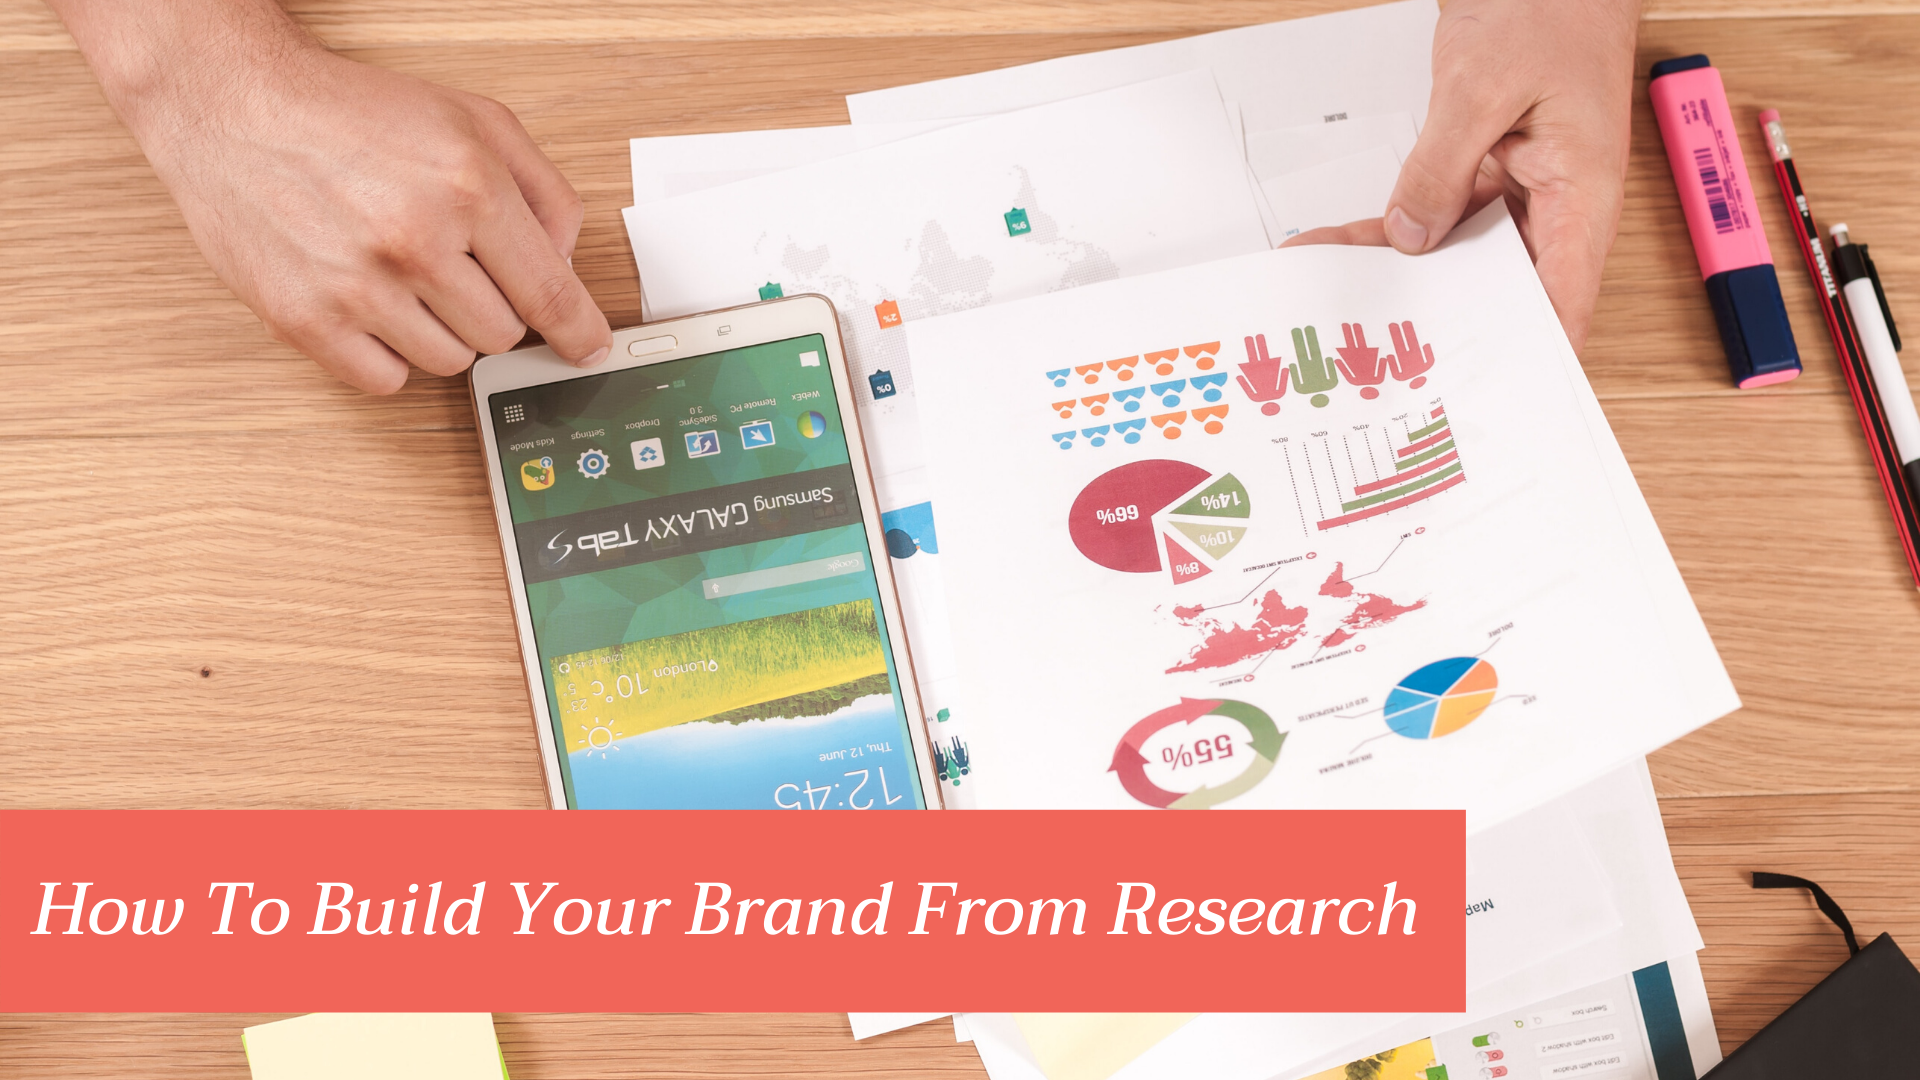 How To Build Your Brand From Research